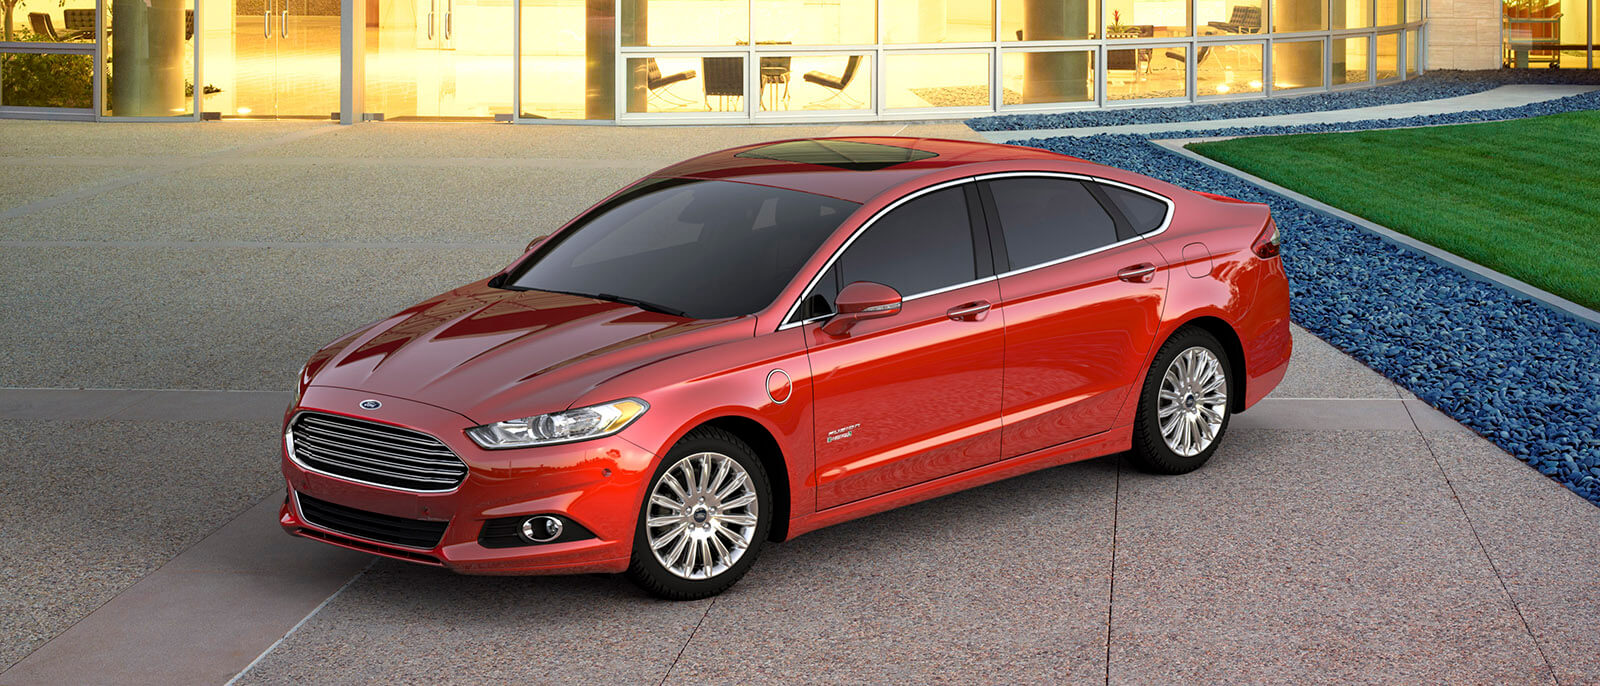 2016 Ford Fusion Red